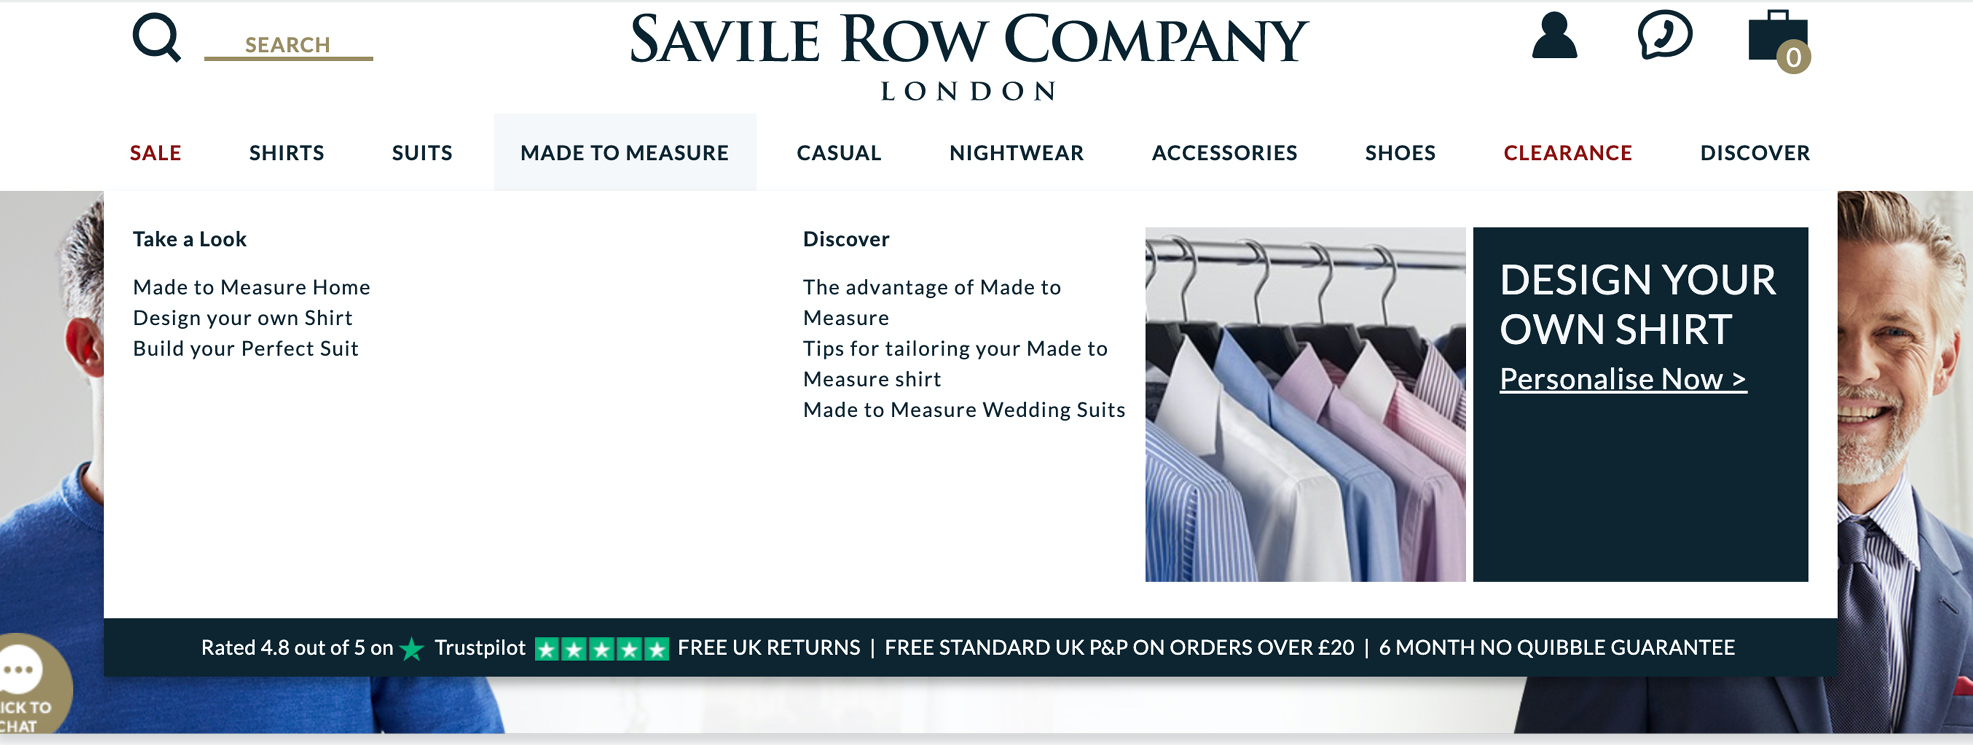 The Savile Row Company website, displaying the company's Trustpilot rating. This research shows that ratings and reviews, along with word of mouth, are the most trusted sources of information.